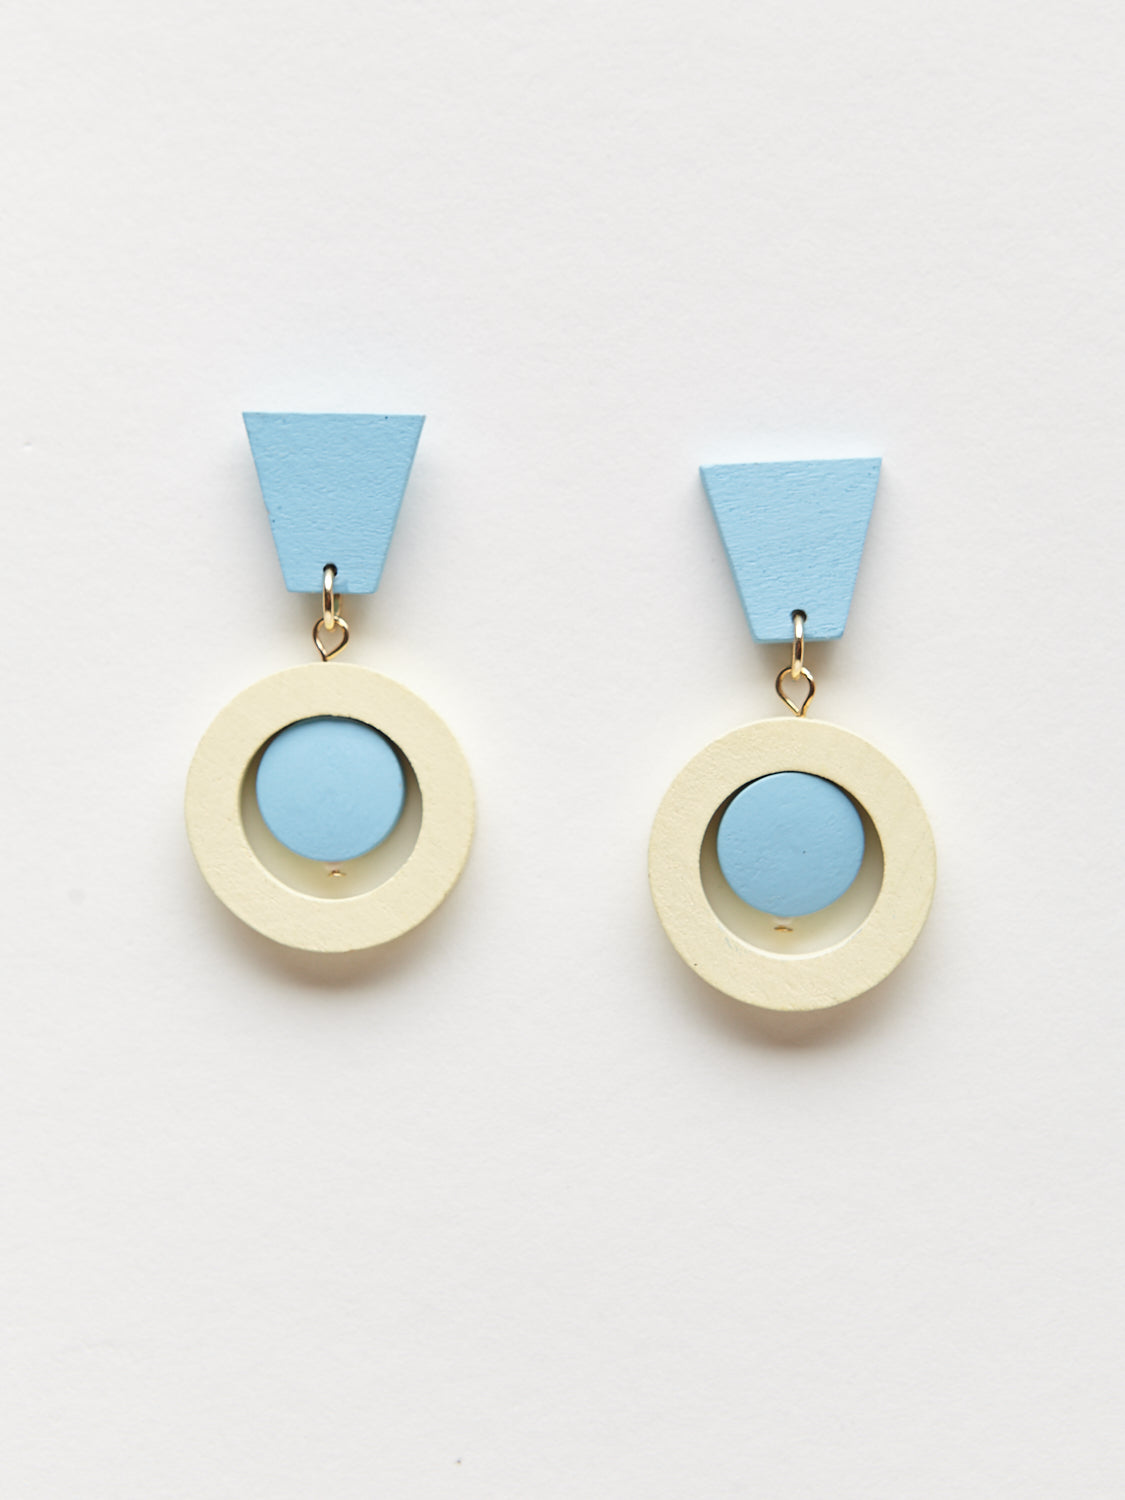 Detail shot of blue and white geometric dangling earrings